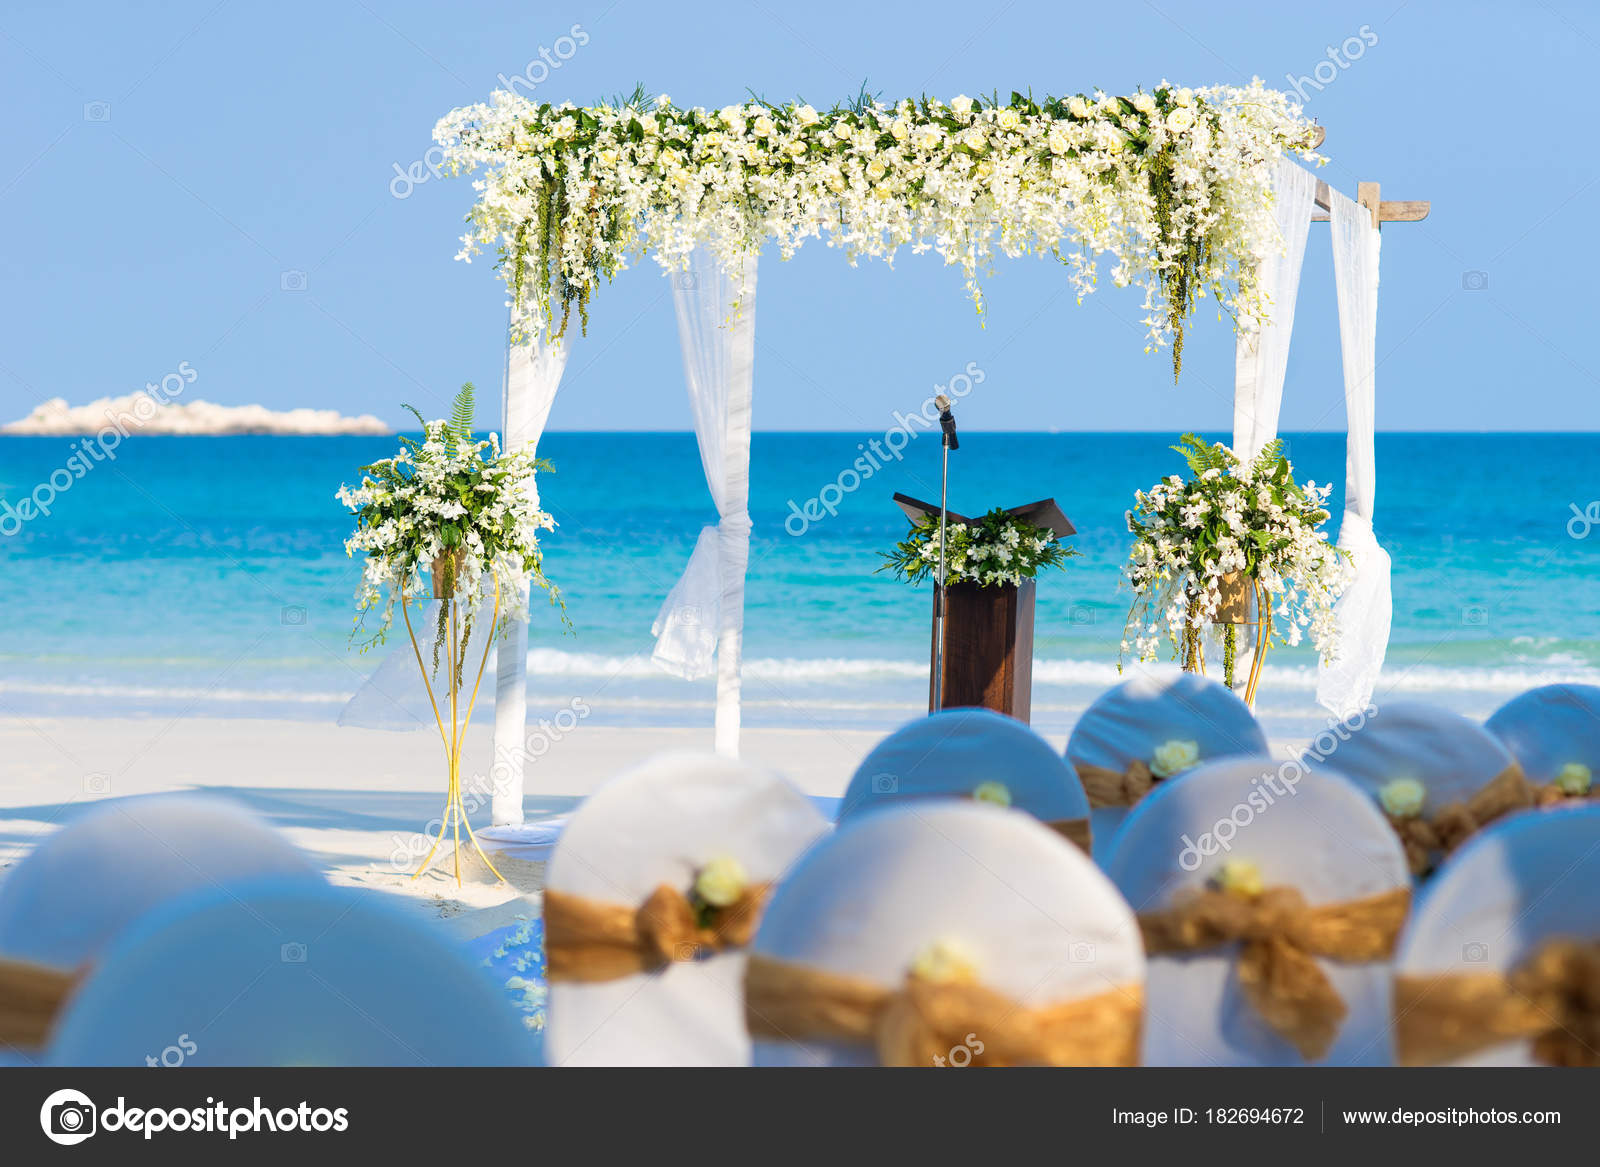 Floral flowers wedding arches decoration wedding altar beach wedding floral flowers wedding arches decoration wedding altar beach wedding venue stock photo junglespirit Image collections